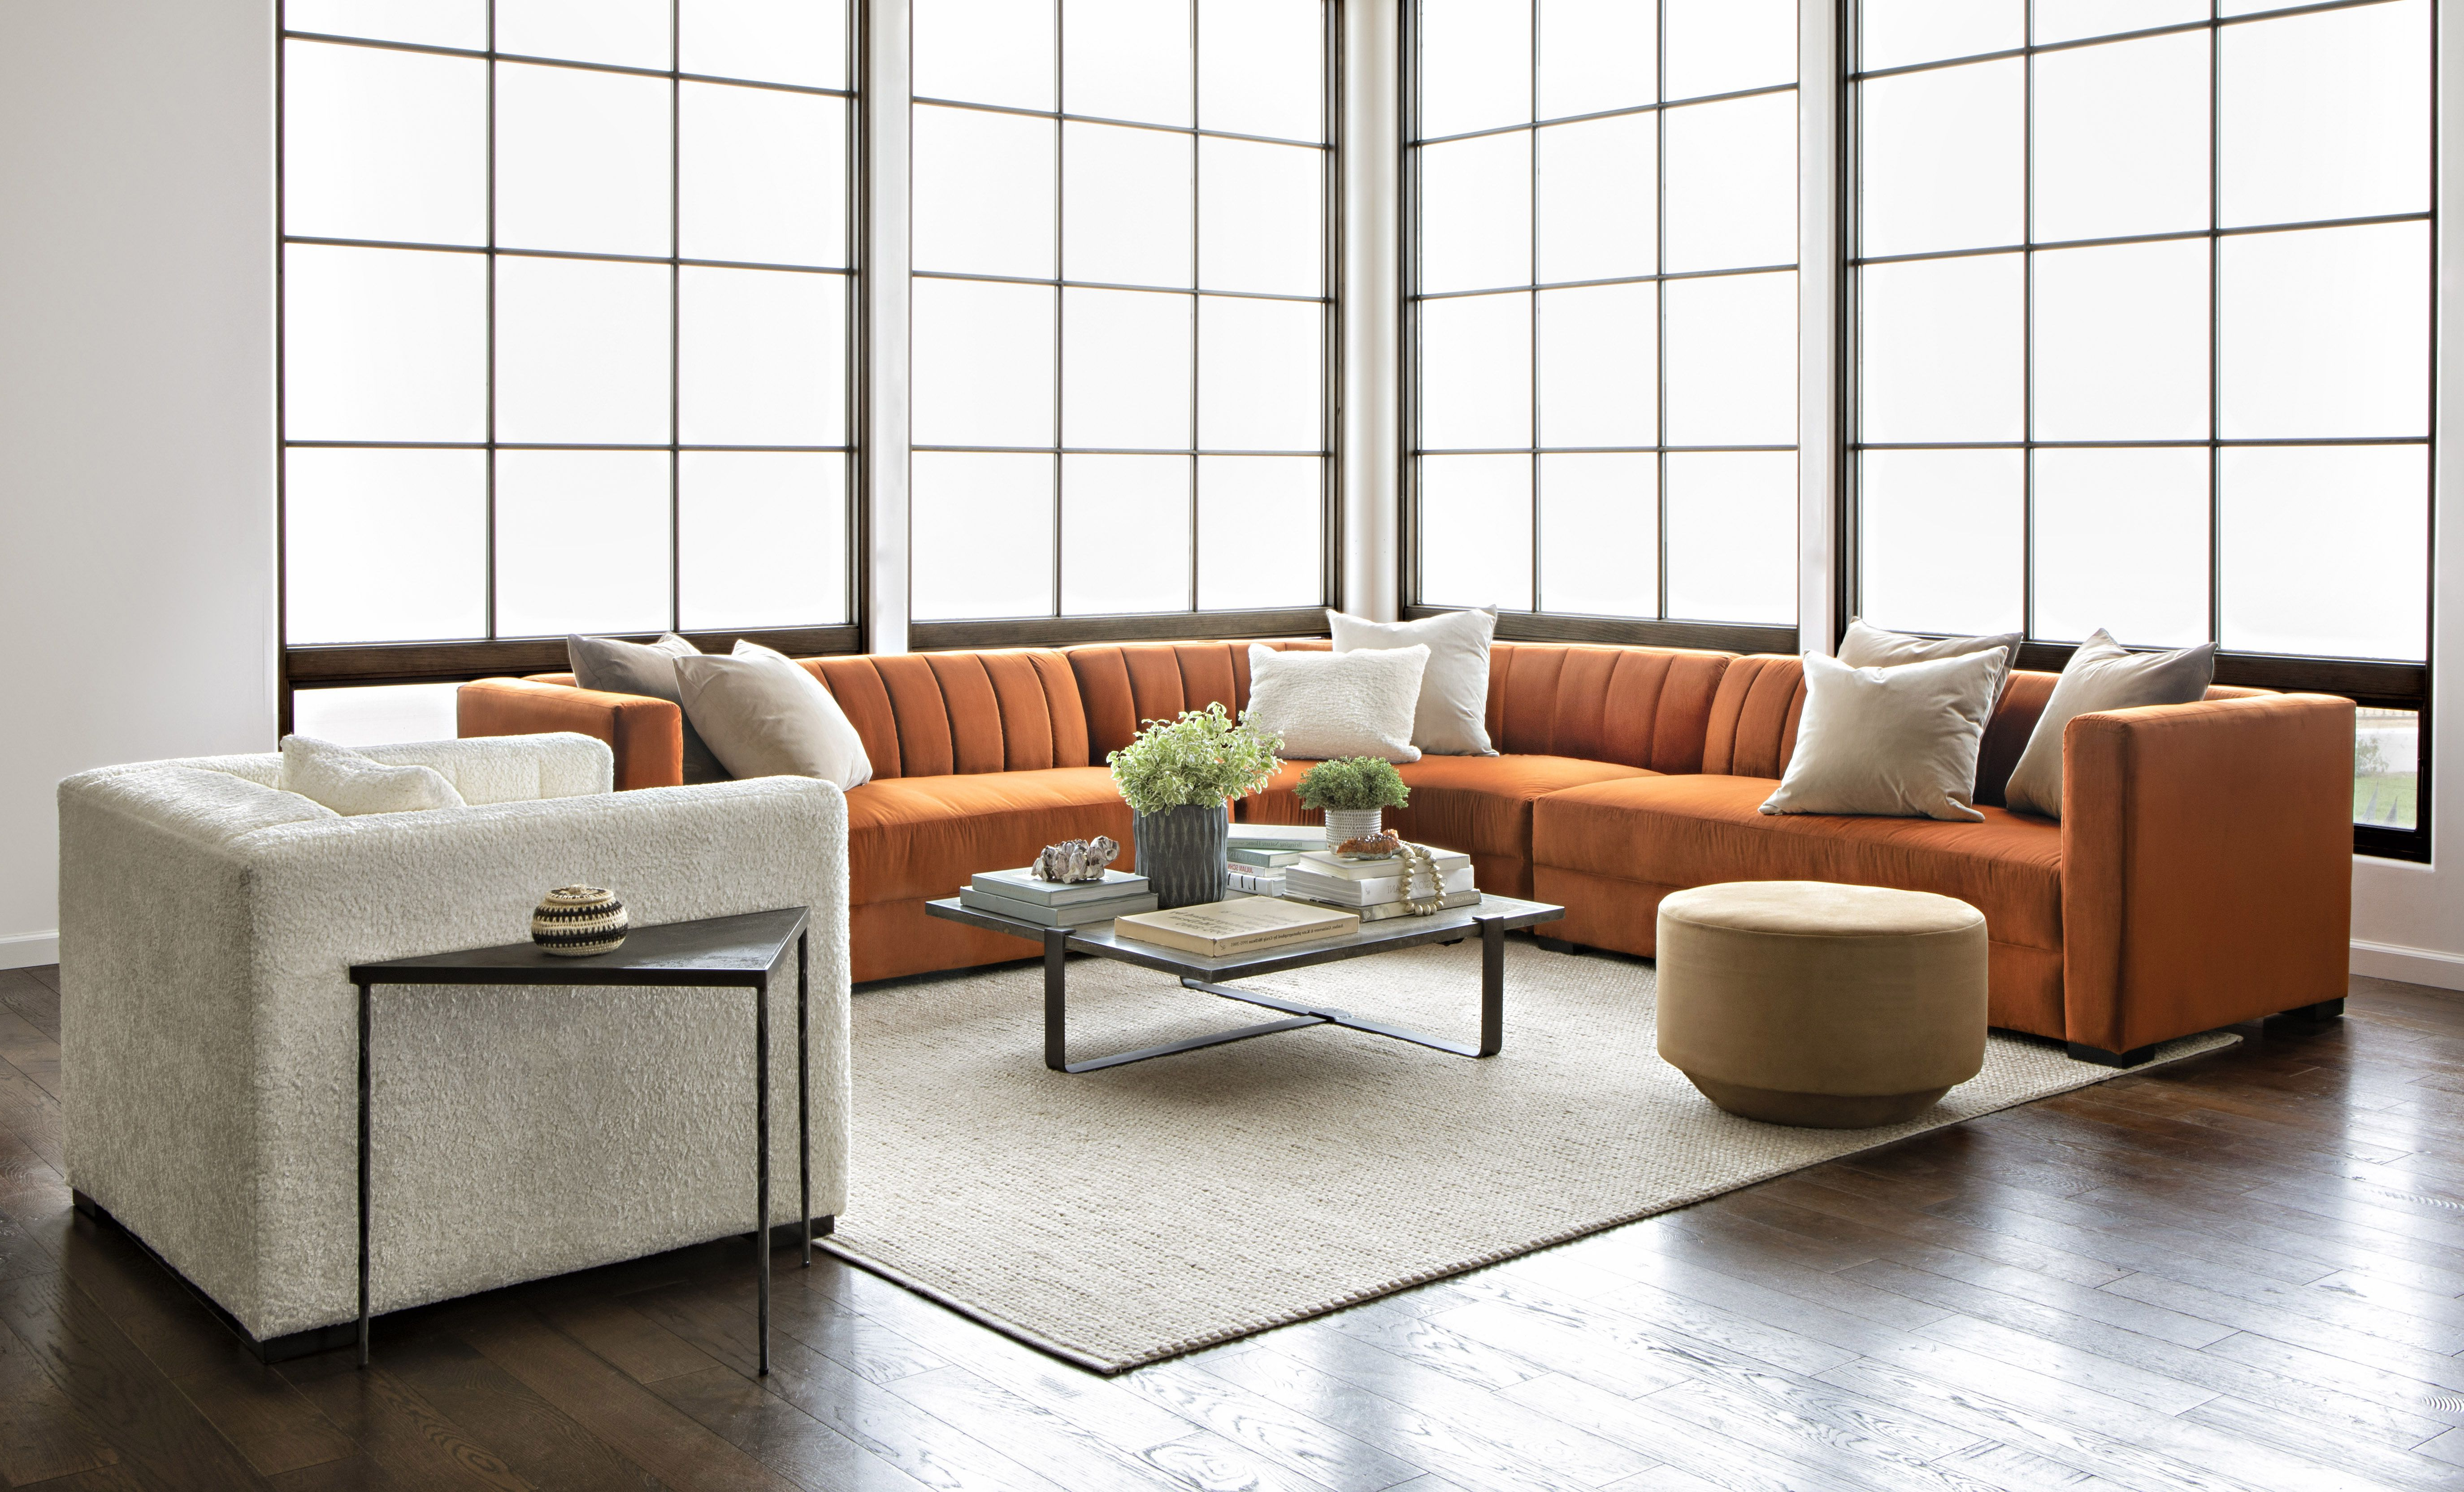 Liv Arm Sofa Chairs By Nate Berkus And Jeremiah Brent Pertaining To Well Liked Soane 3 Piece Sectionalnate Berkus And Jeremiah Brent (View 18 of 20)